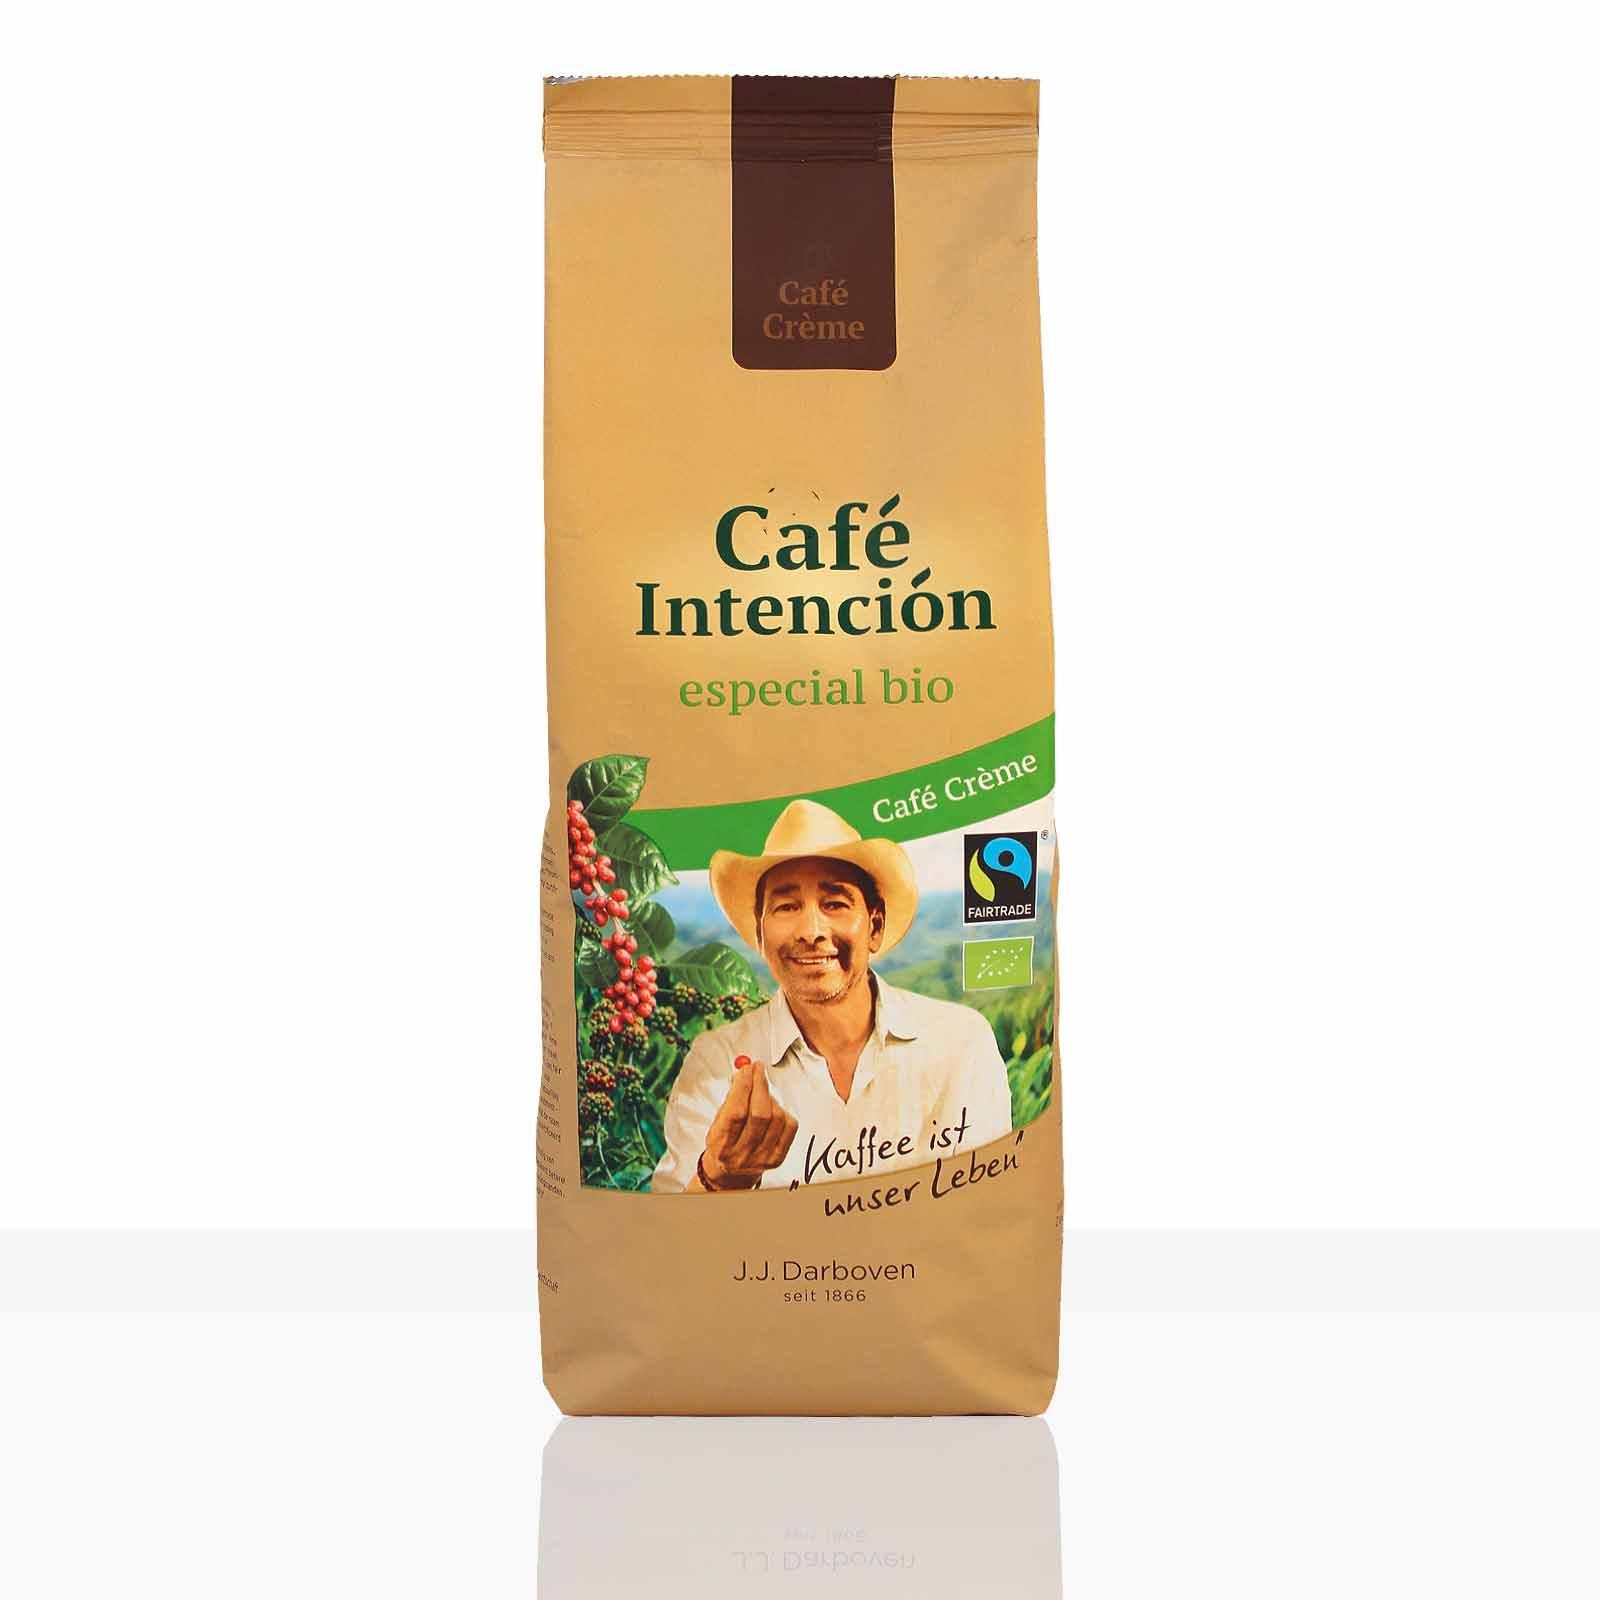 Darboven Cafe Creme Intencion especial Fairtrade - 500g ganze Kaffee-Bohne